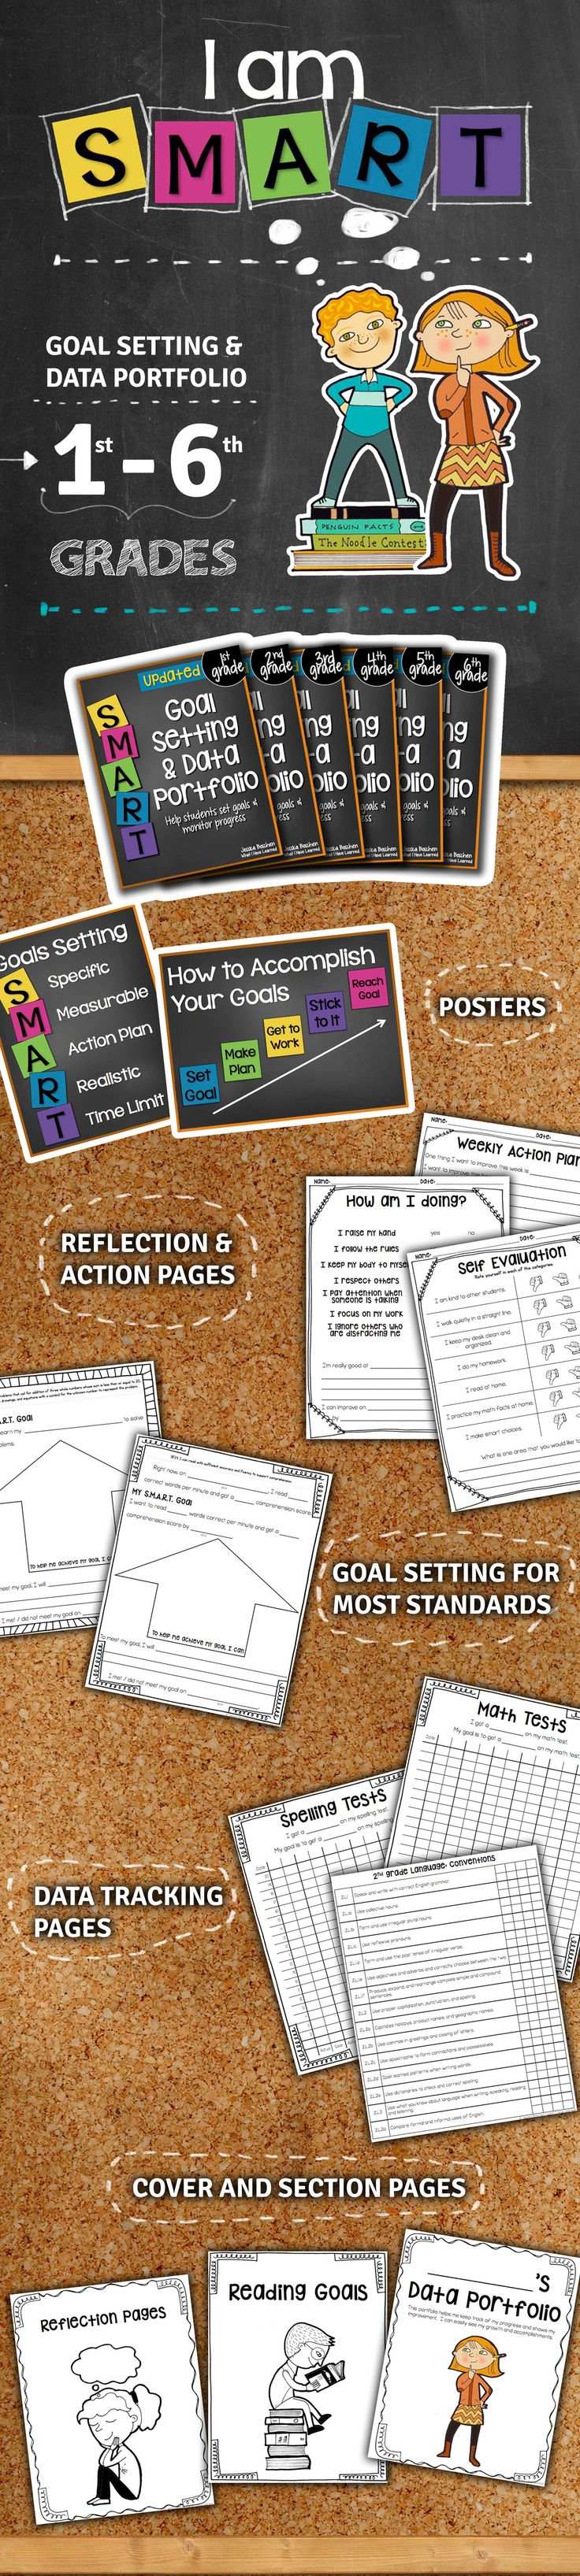 SMART Goal Setting in elementary school.  Help students set SMART goals by setting strategic, measurable goals with an action plan that are realistic and timely.  Included are data binders, goal setting forms, reflection pages and much, much more. | Student Directed Learning | Data-driven Education | Teaching Metacognition | Creating Student Buy-In | Teaching Personal Responsibility #SMARTgoalsetting